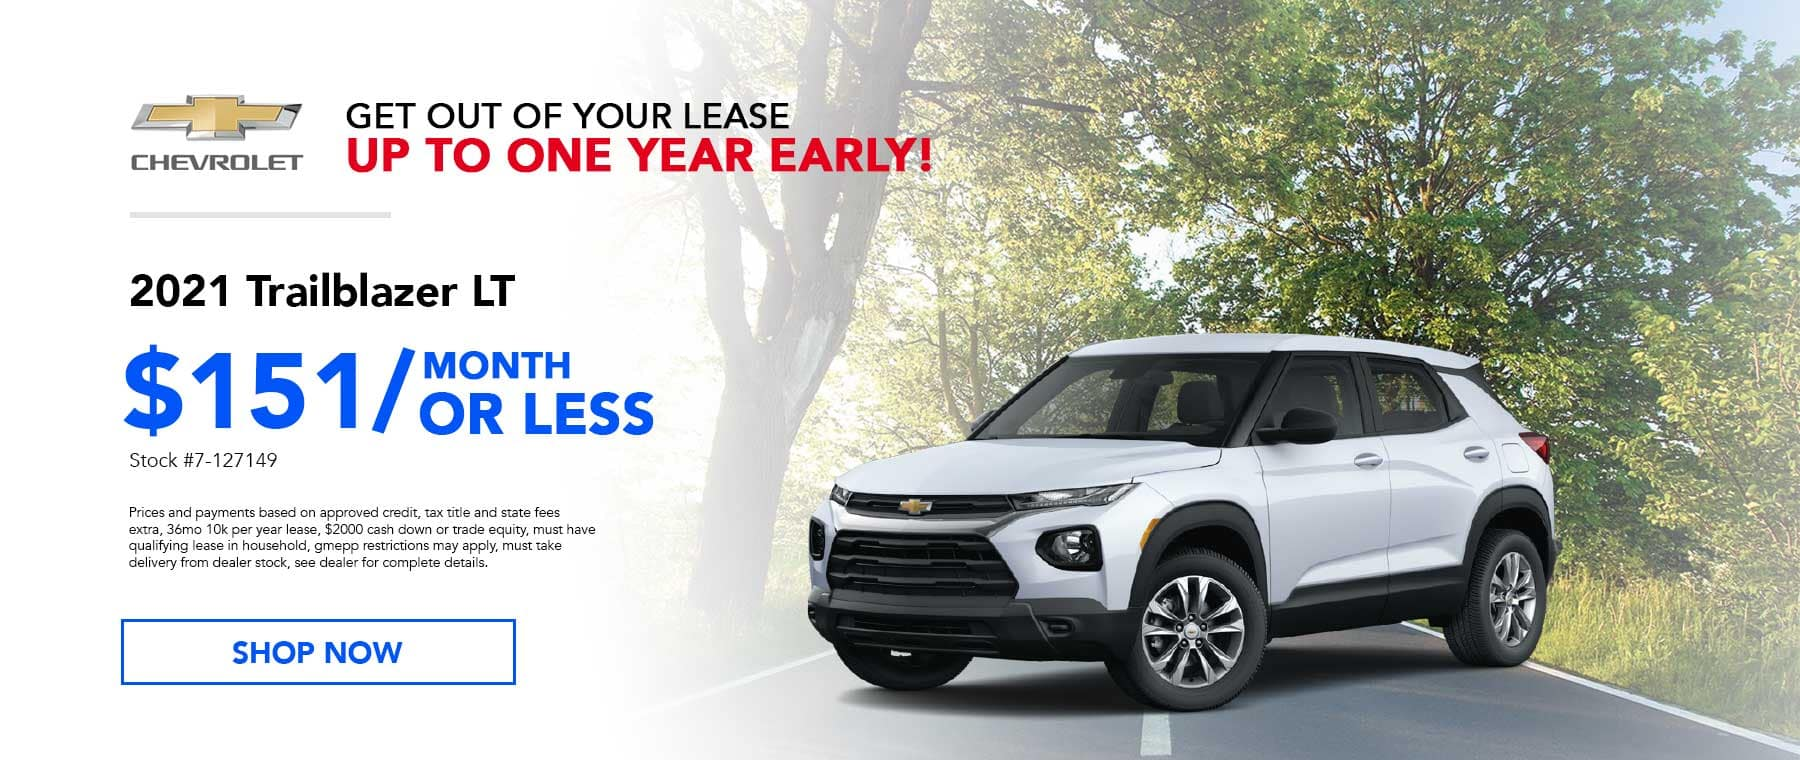 May 2021 Trailblazer Lease Specials